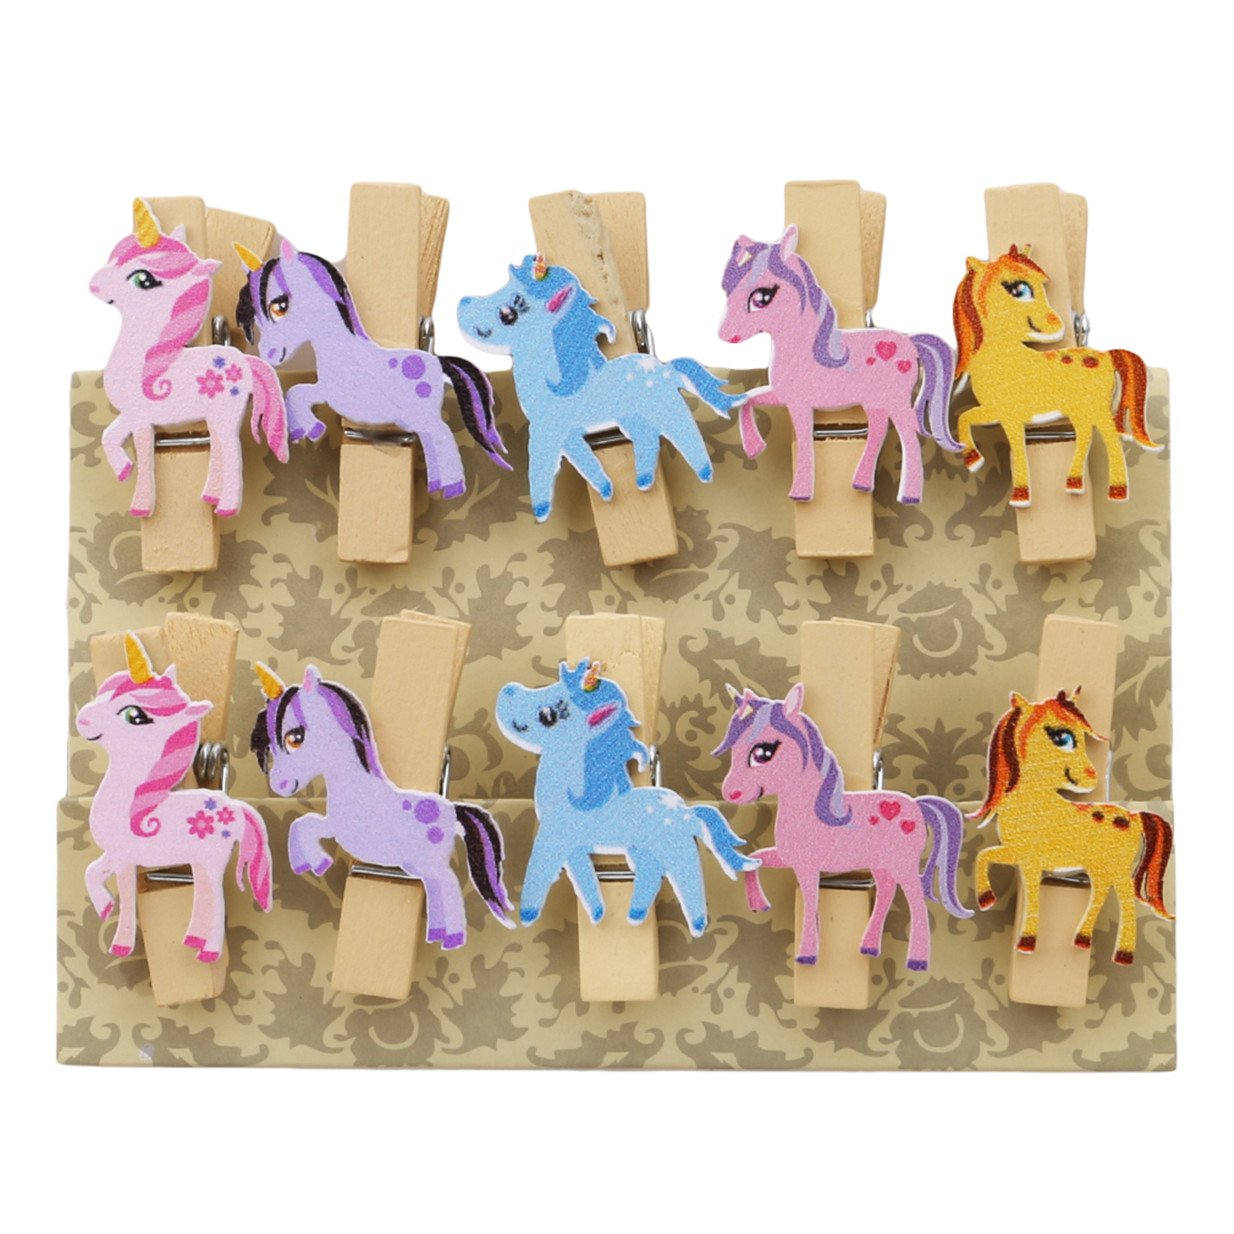 EJY Arts & Crafts 10pcs Craft Wooden Mini Pegs Unicorn Wooden Photo Clips 88_Store